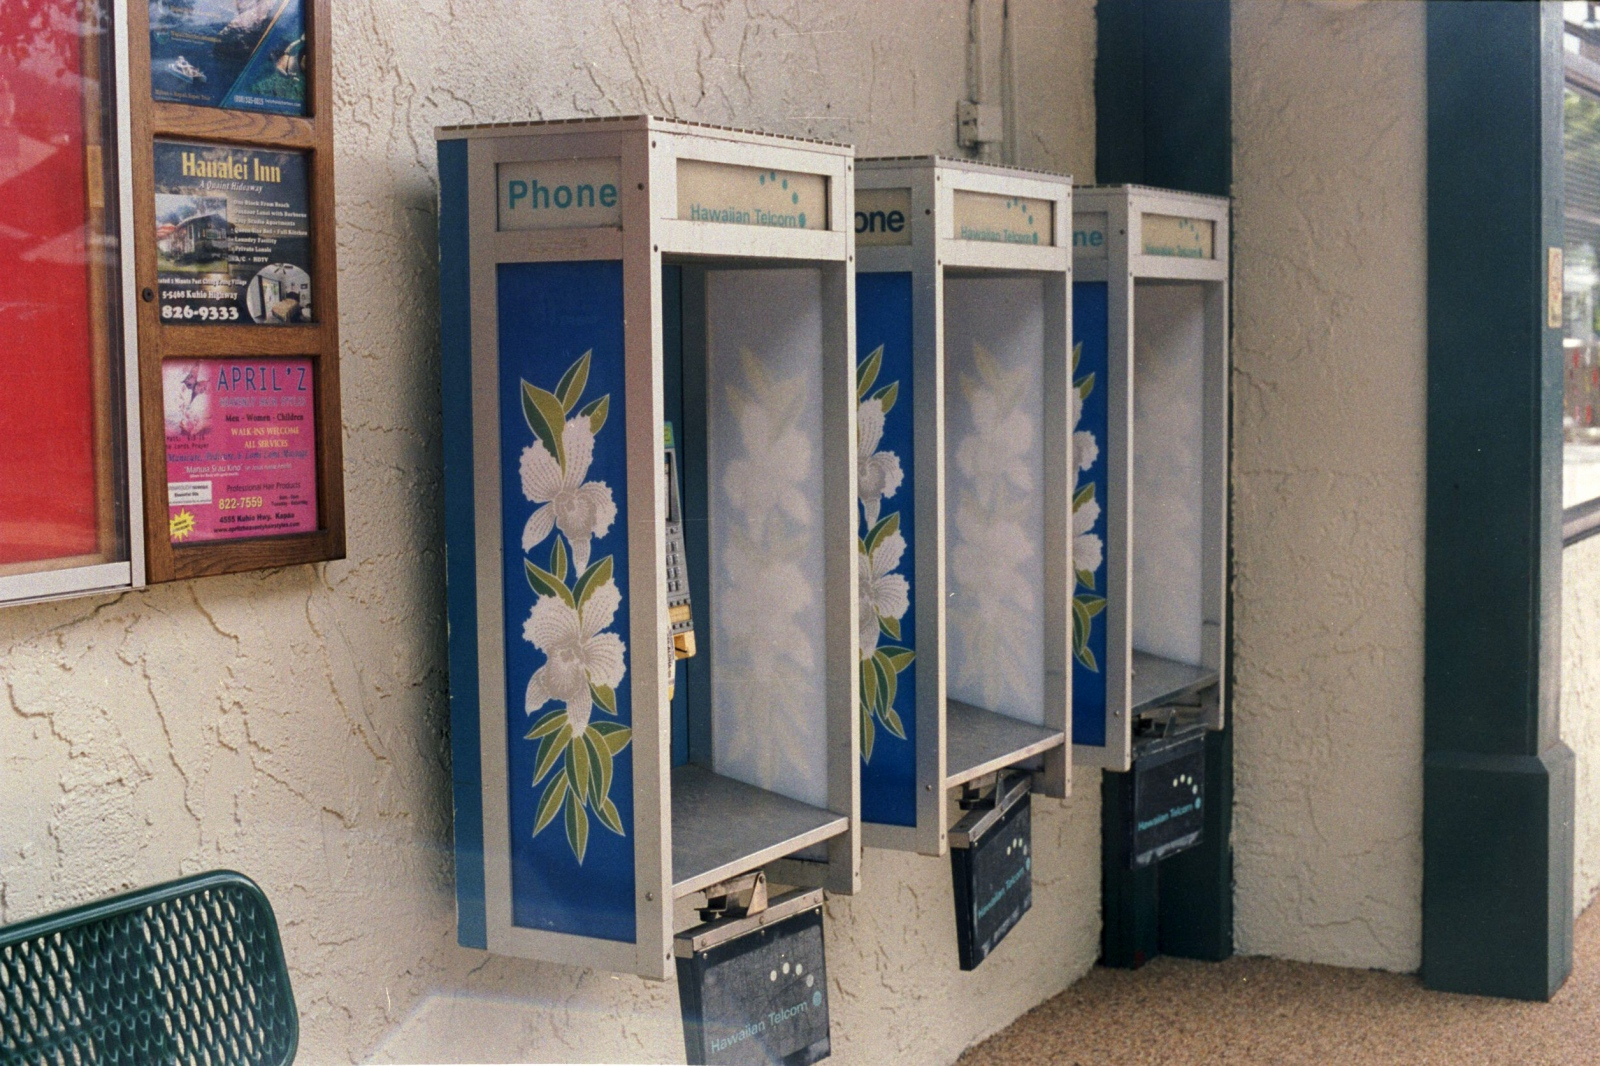 Pay phones in Hanalei, Kauai, HI